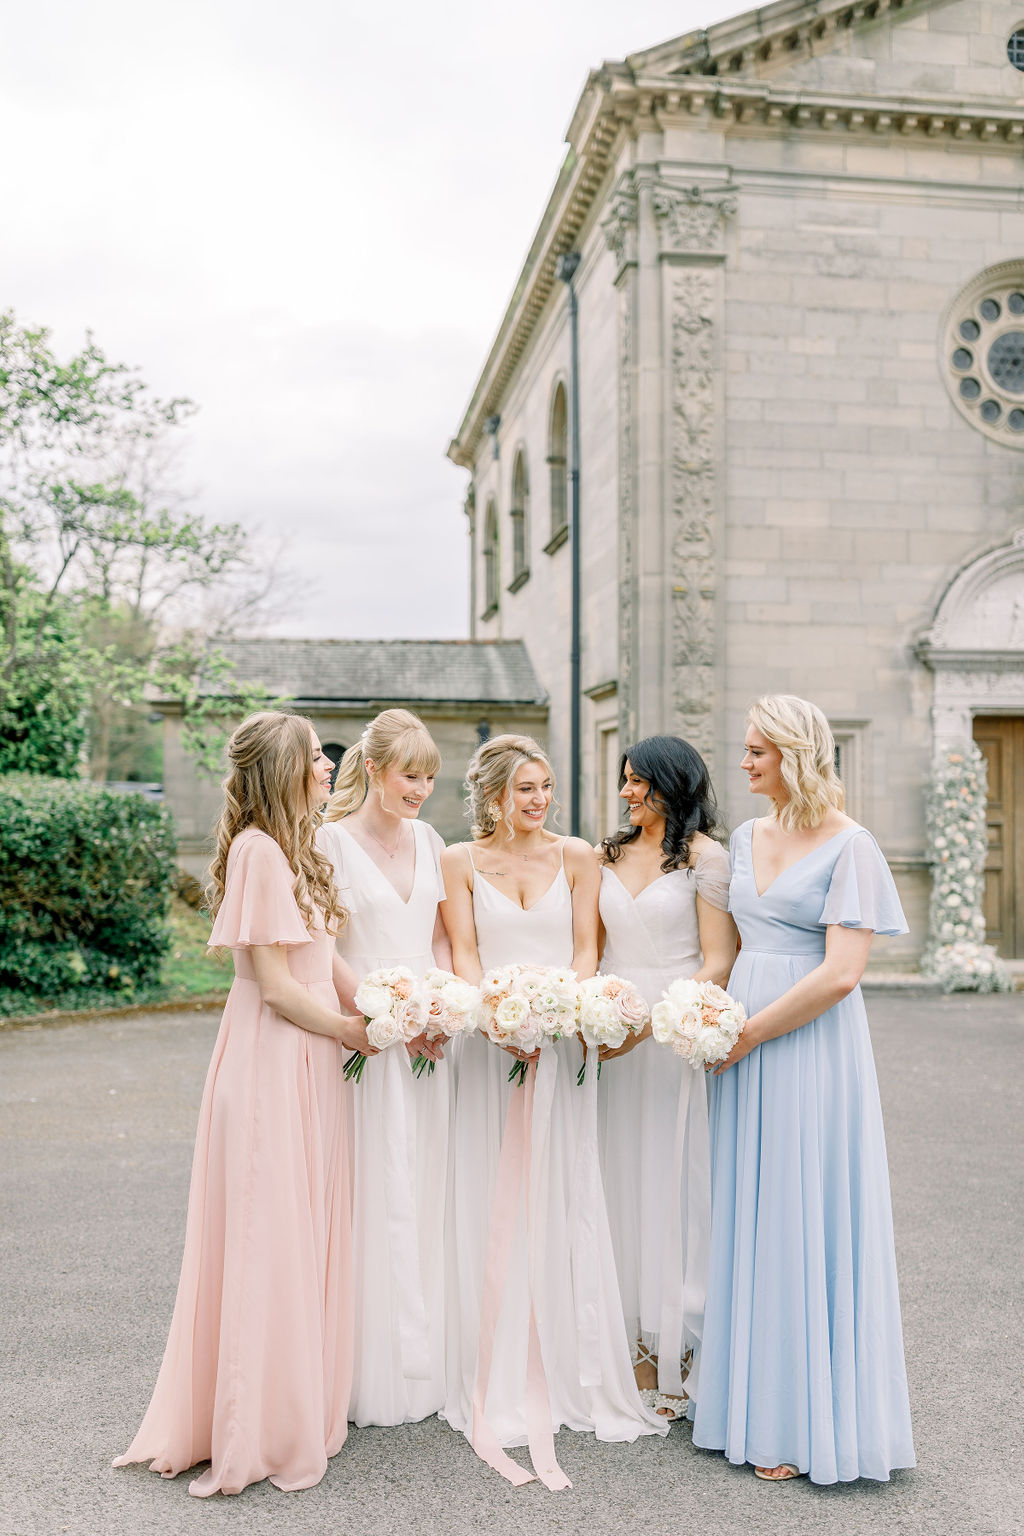 Bridesmaids in TH&H dresses and bride in wedding dress with bouquets by Flourish and Grace, Bristol Wedding Florist